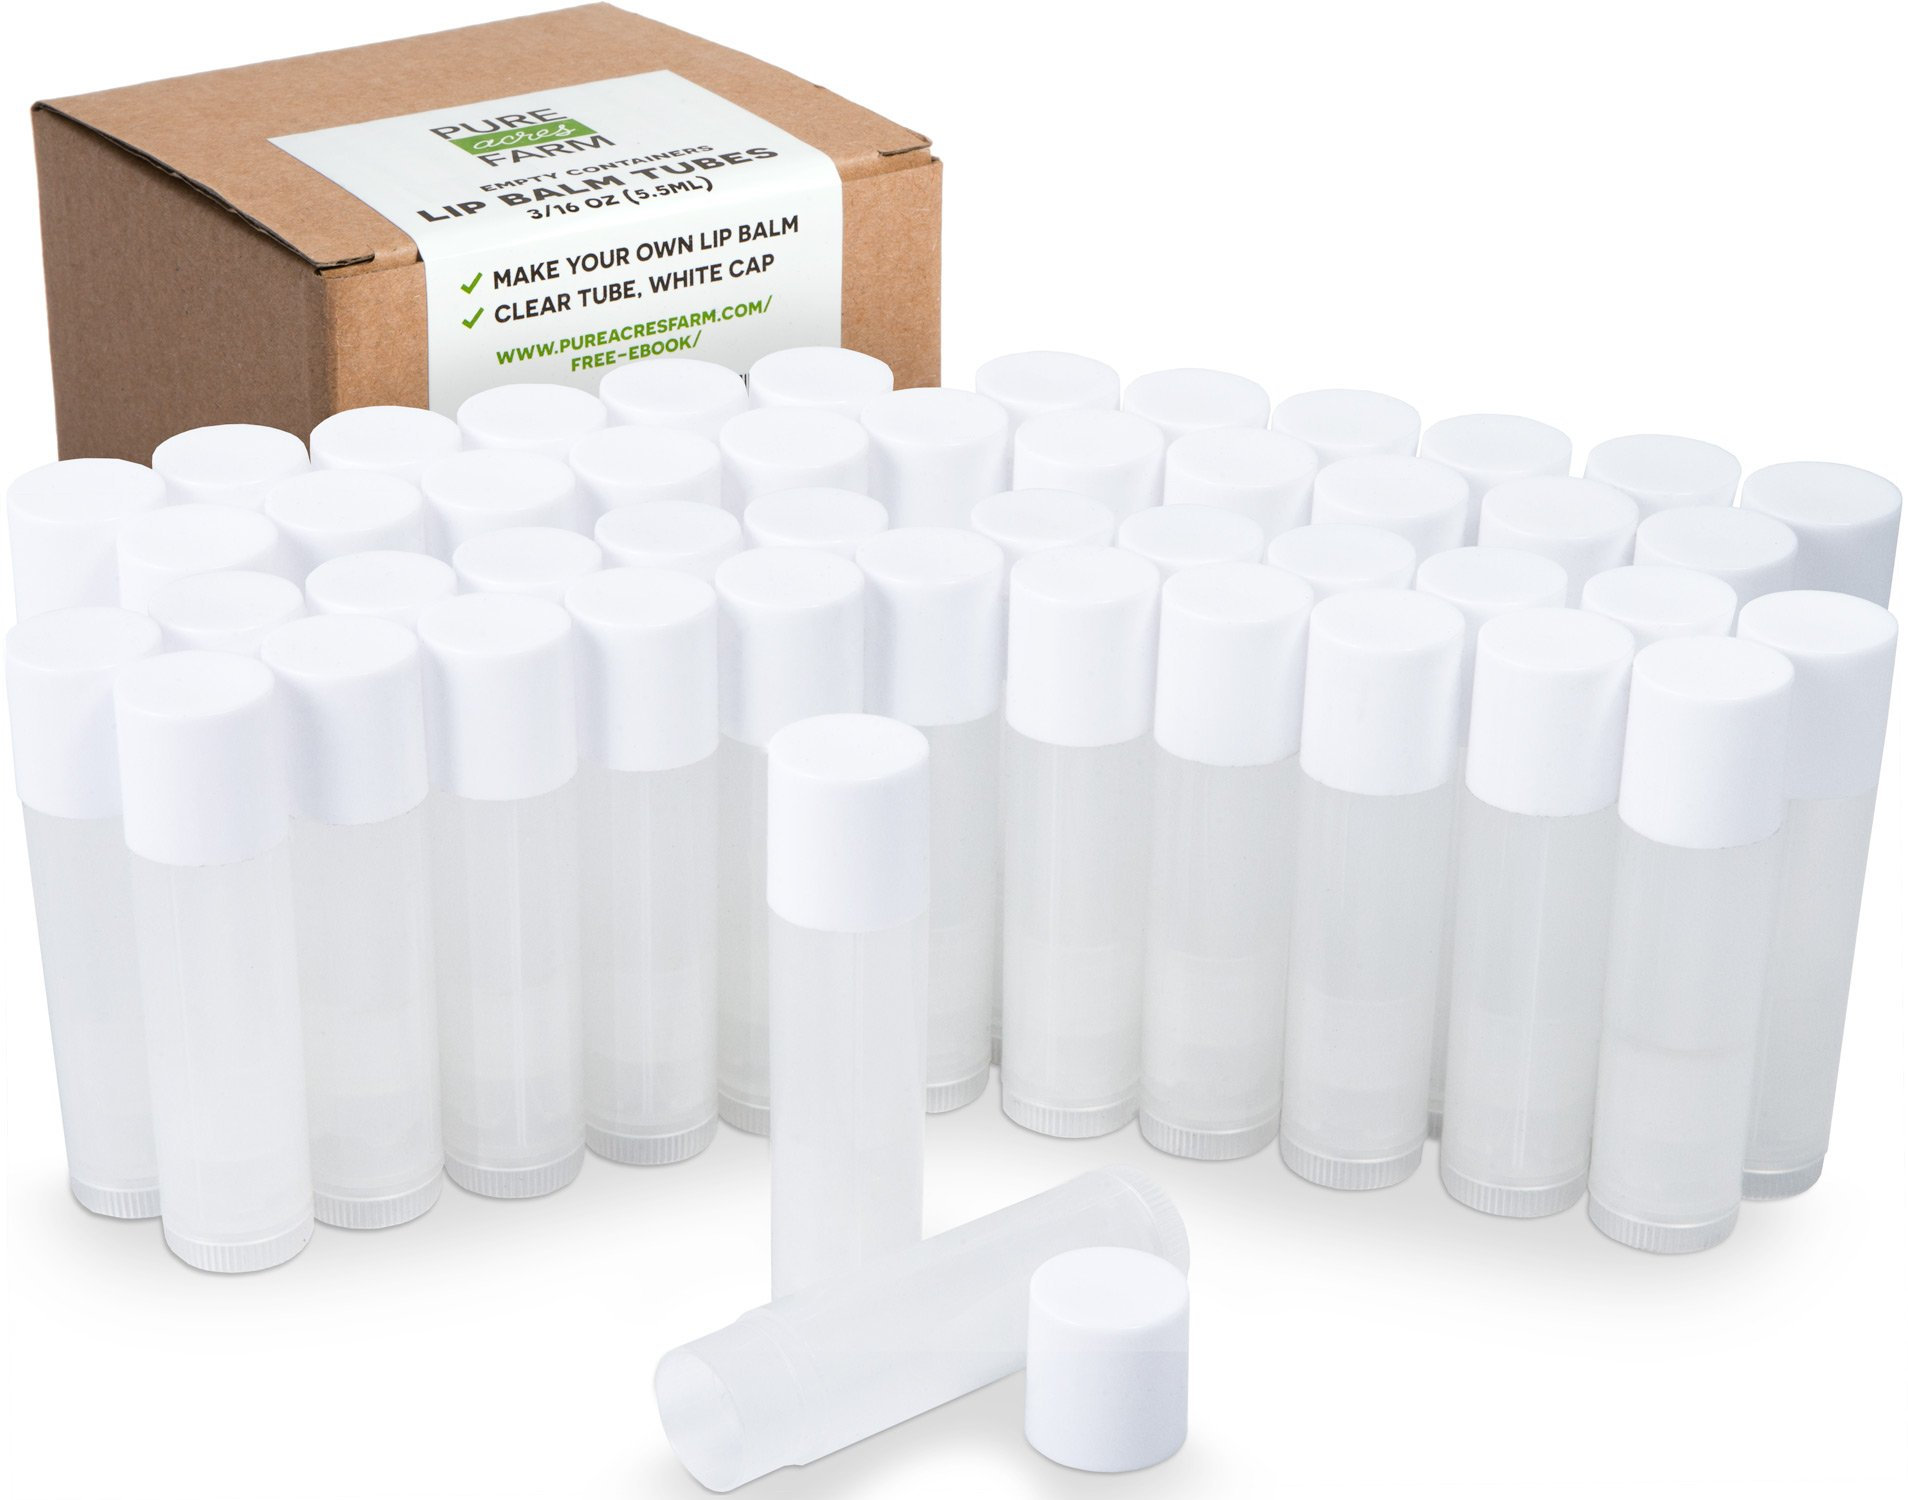 50 Lip Balm Containers - Empty Tubes - Make Your Own Lip Balm - 3/16 Oz (5.5ml) (50 Tubes, Clear) by Pure Acres Farm